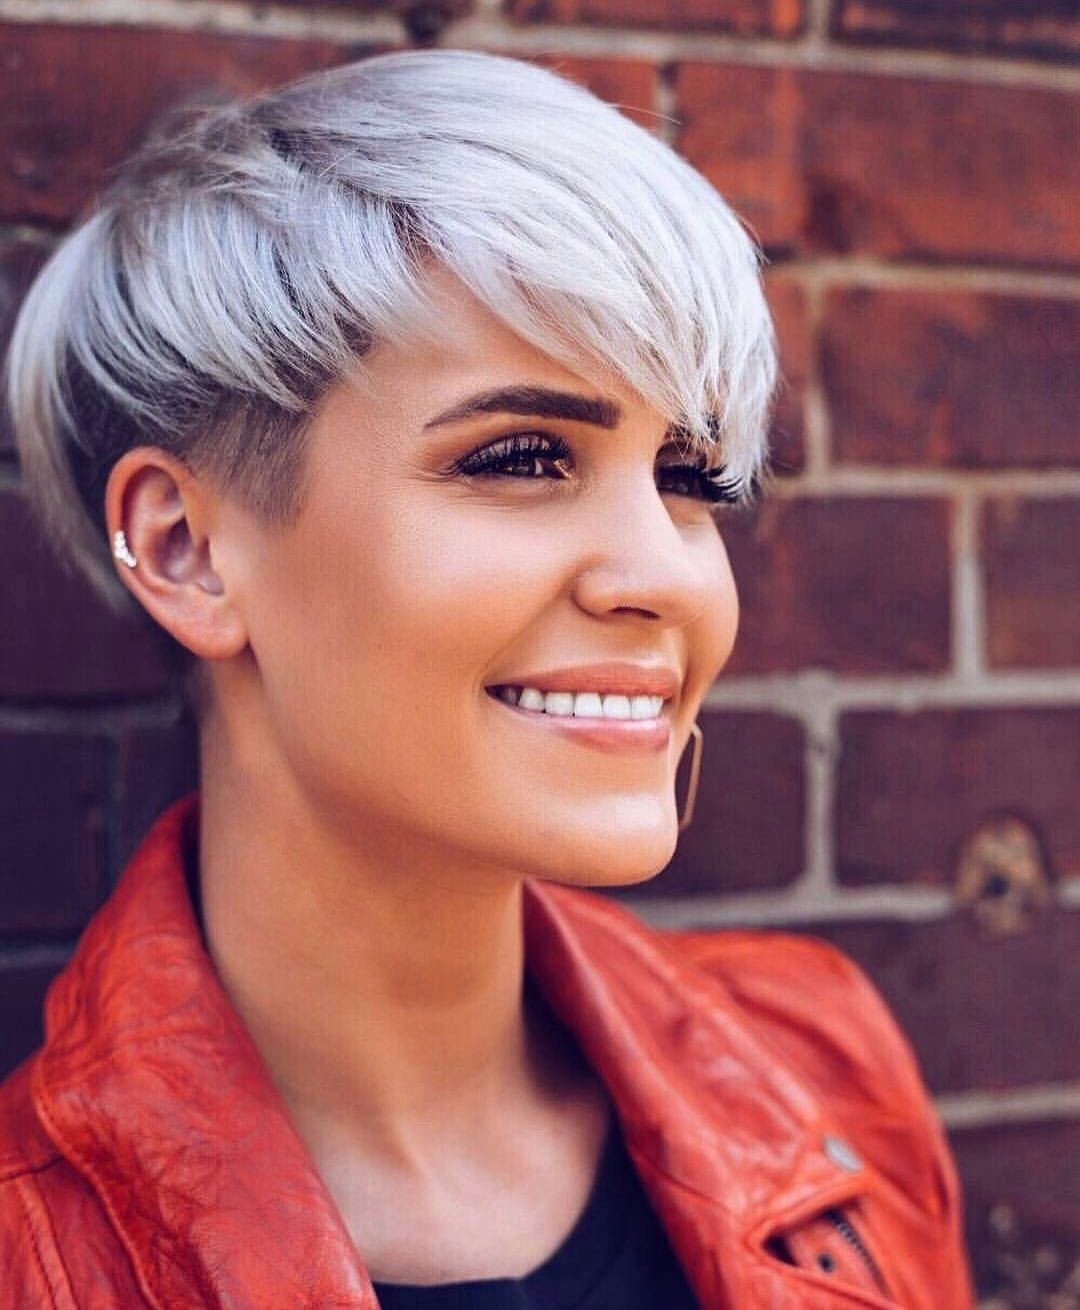 Pin by christina hannah on hair pinterest short hair pixies and